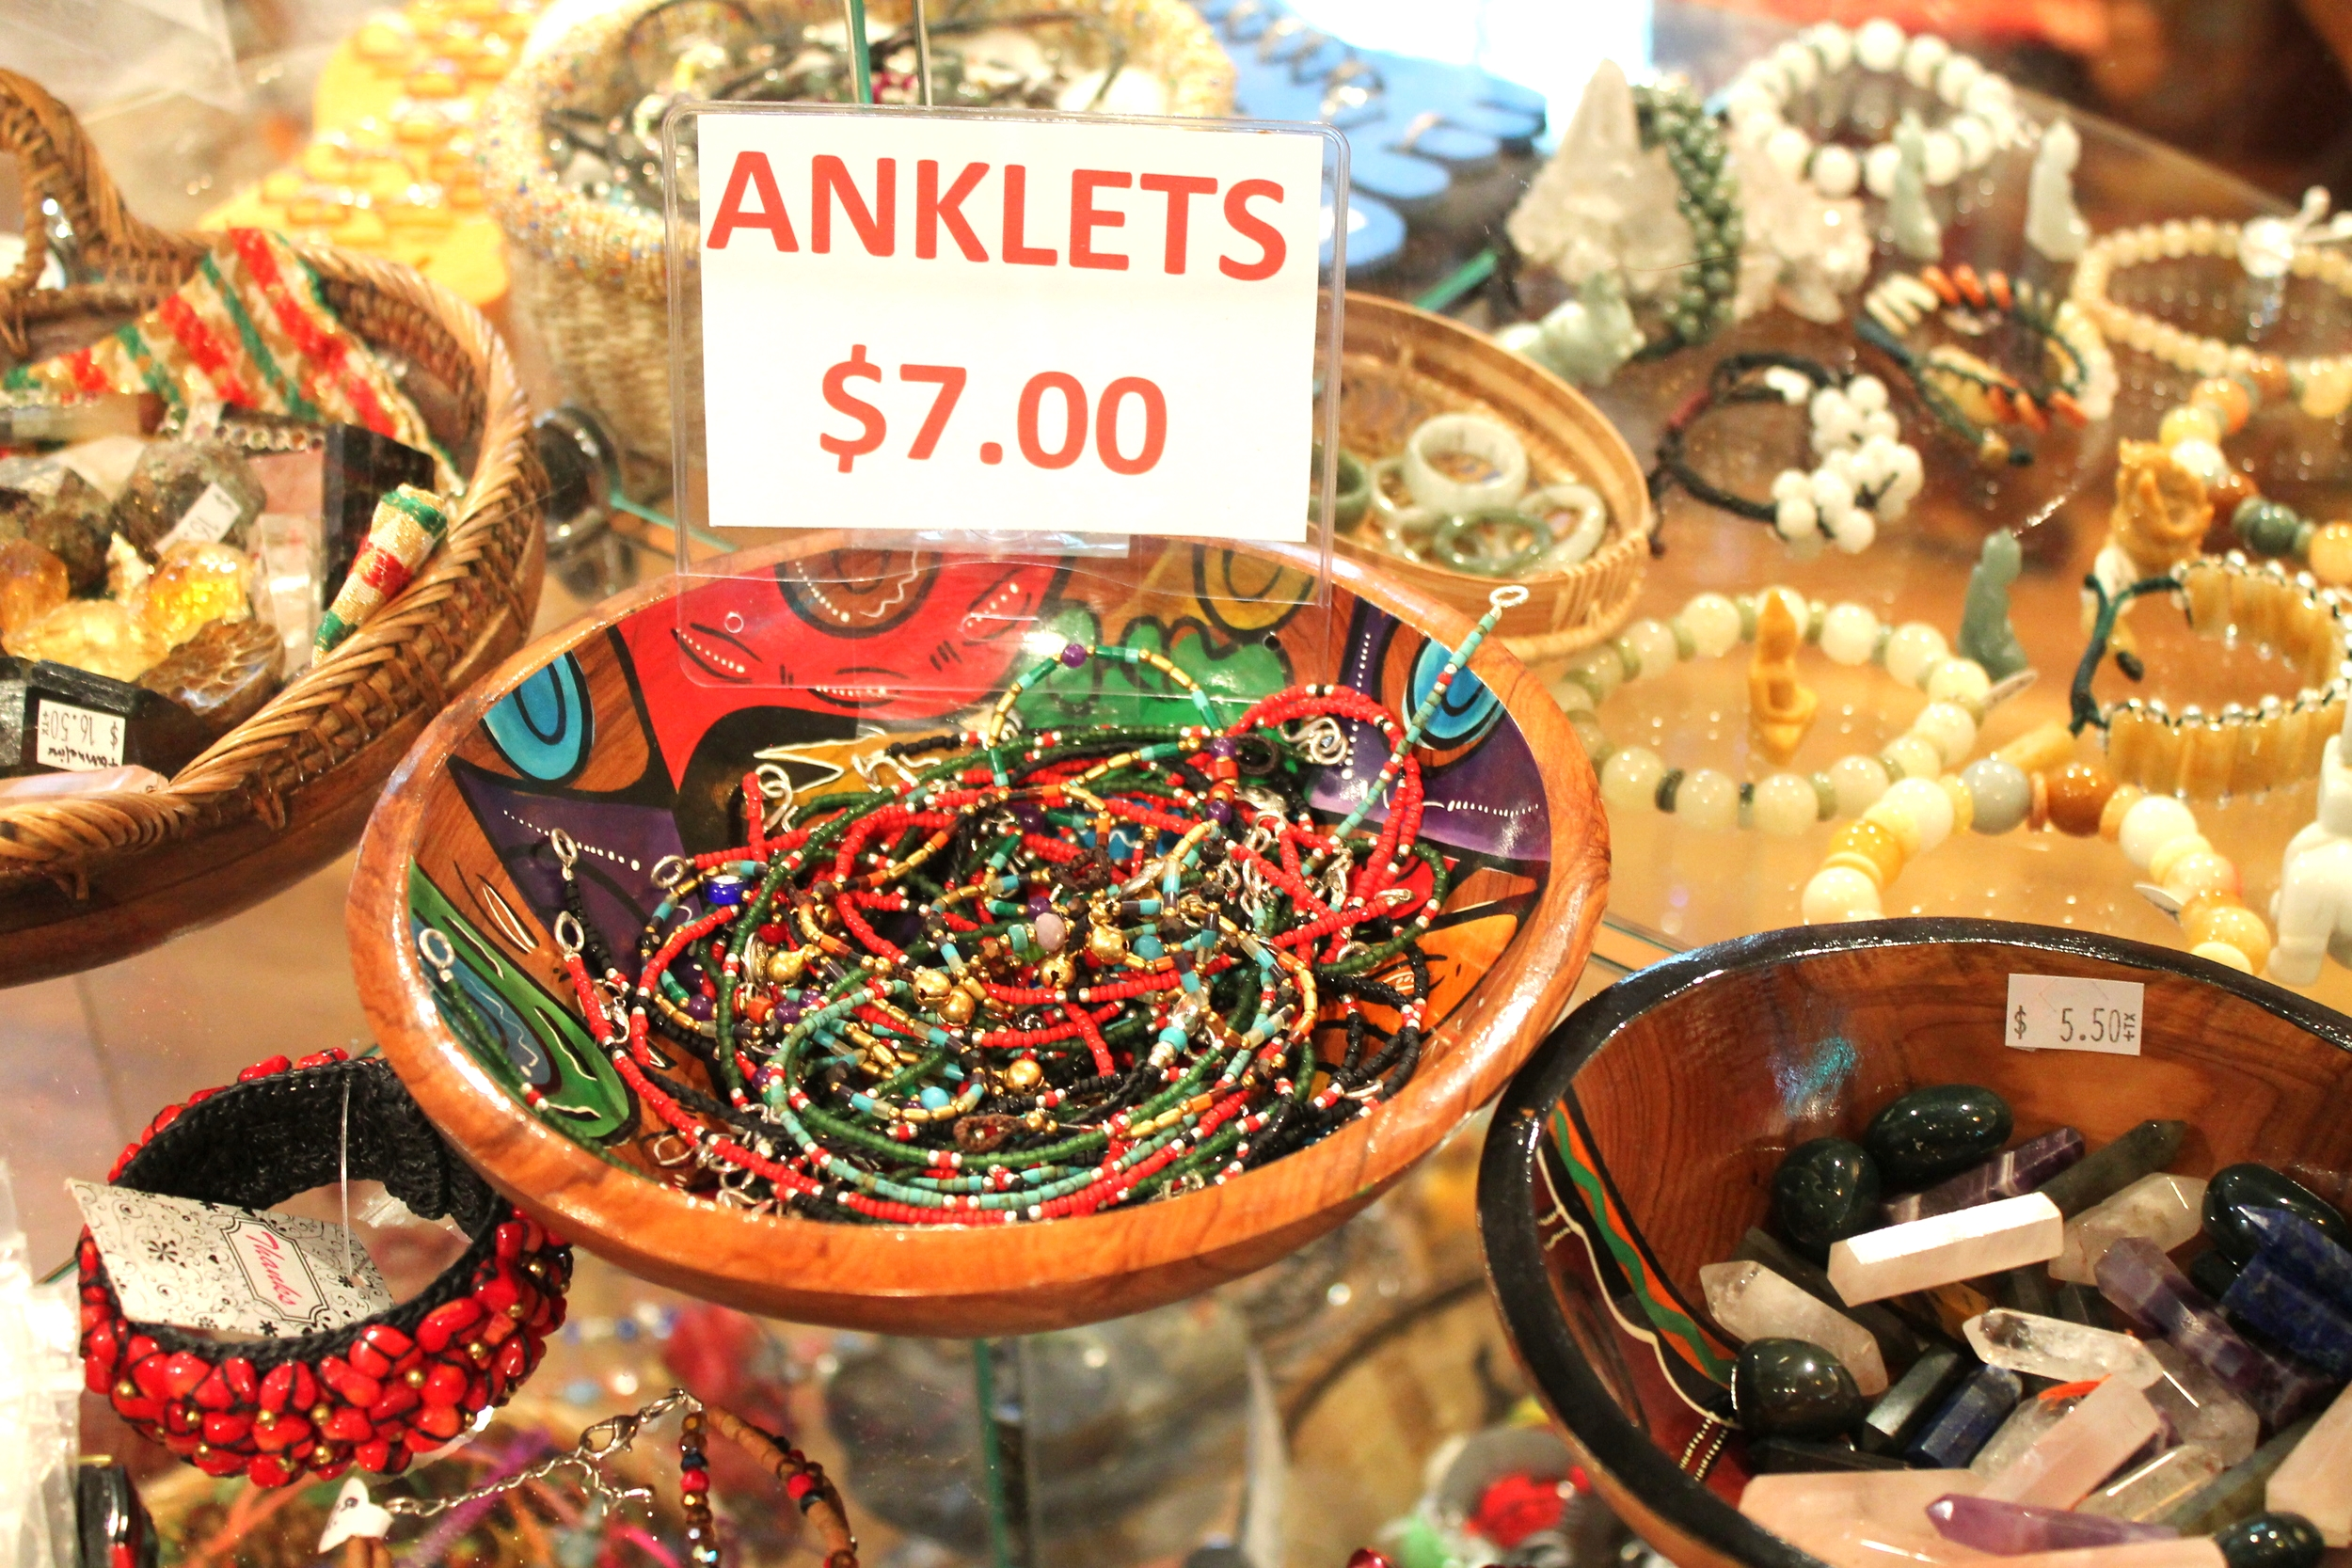 Anklets hand crafted especially for Juliet's Jewels in Nepal. The beads are made of real turquoise, coral, onyx, etc.